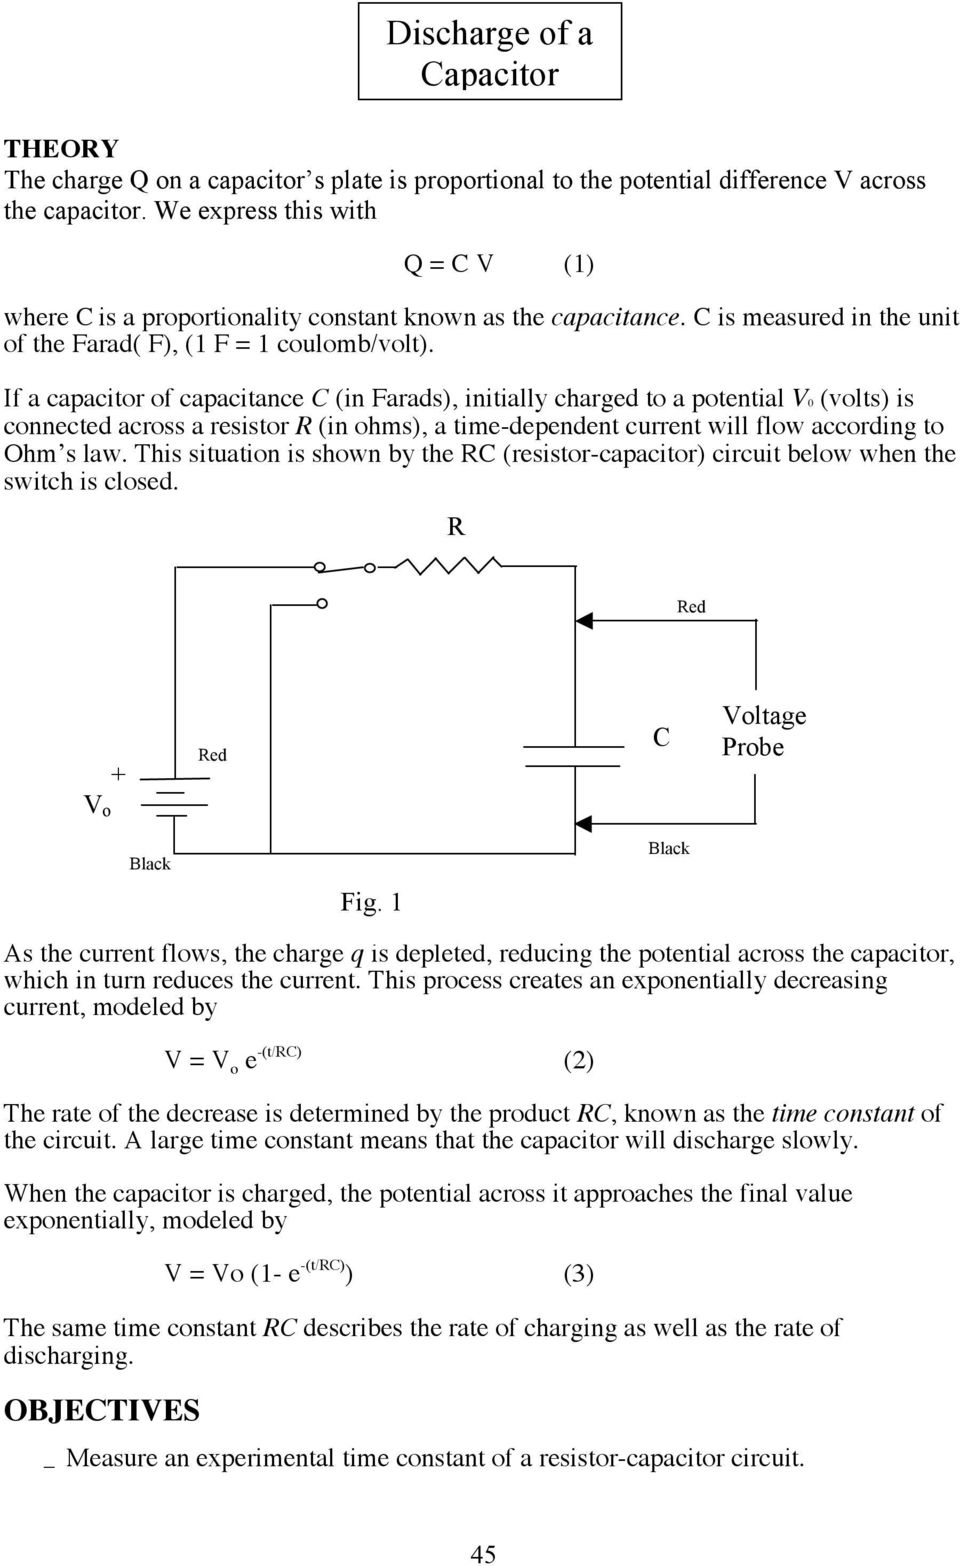 Discharge Of A Capacitor Pdf Capacitance Charging And Discharging If C In Farads Initially Charged To Potential